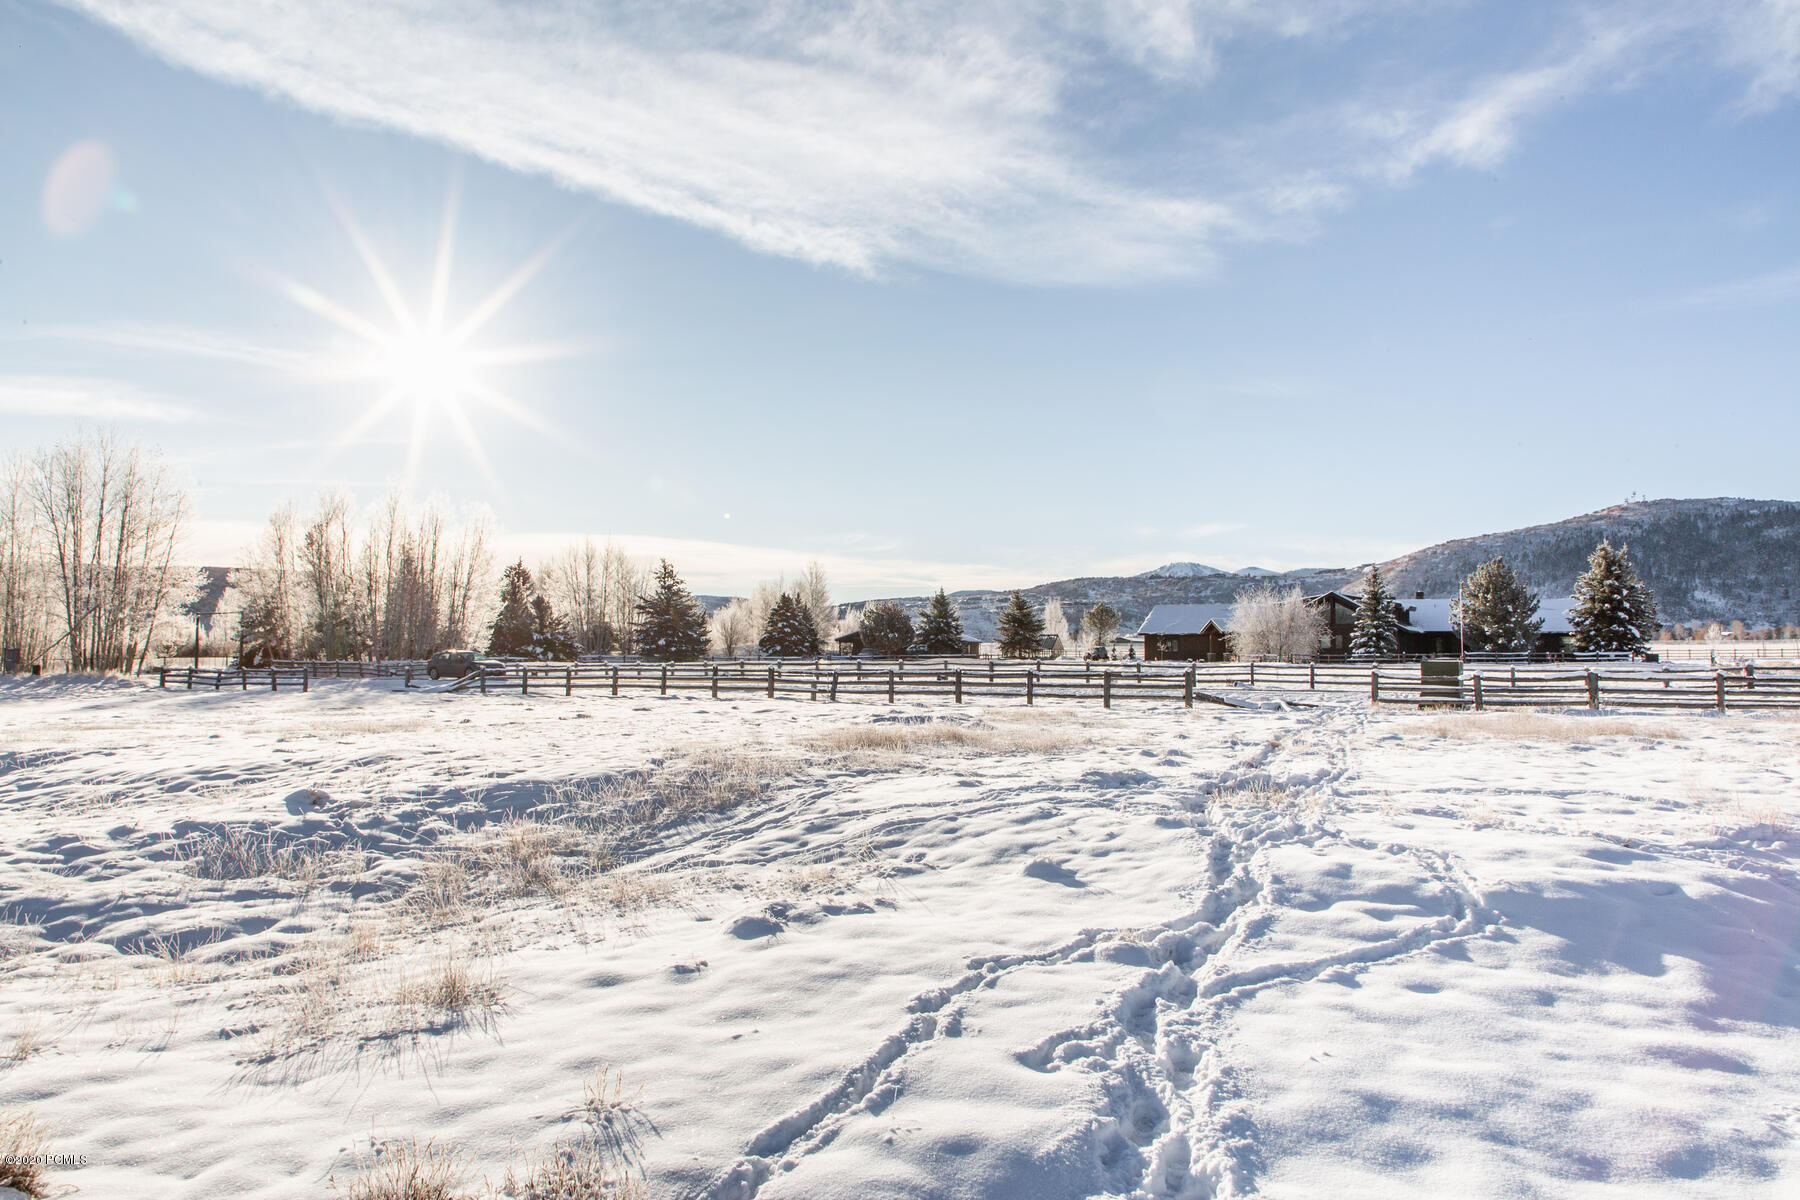 682 5200 North, Park City, Utah 84098, ,Land,For Sale,5200 North,12004388